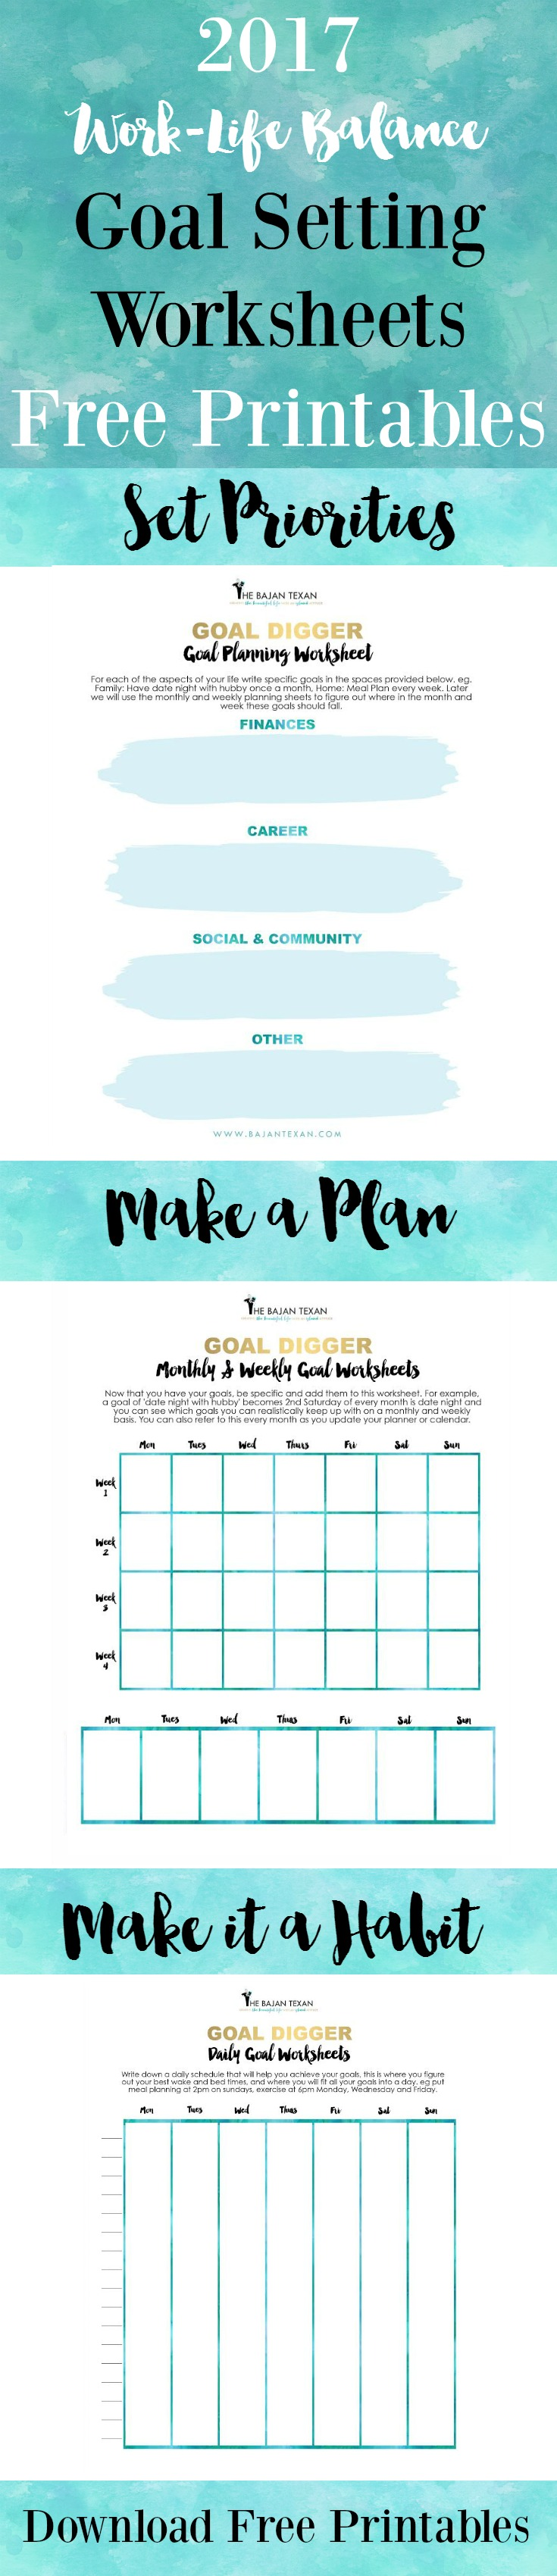 worksheet Life Planning Worksheet free goal planning worksheets for the new year bajan texan 2017 printables